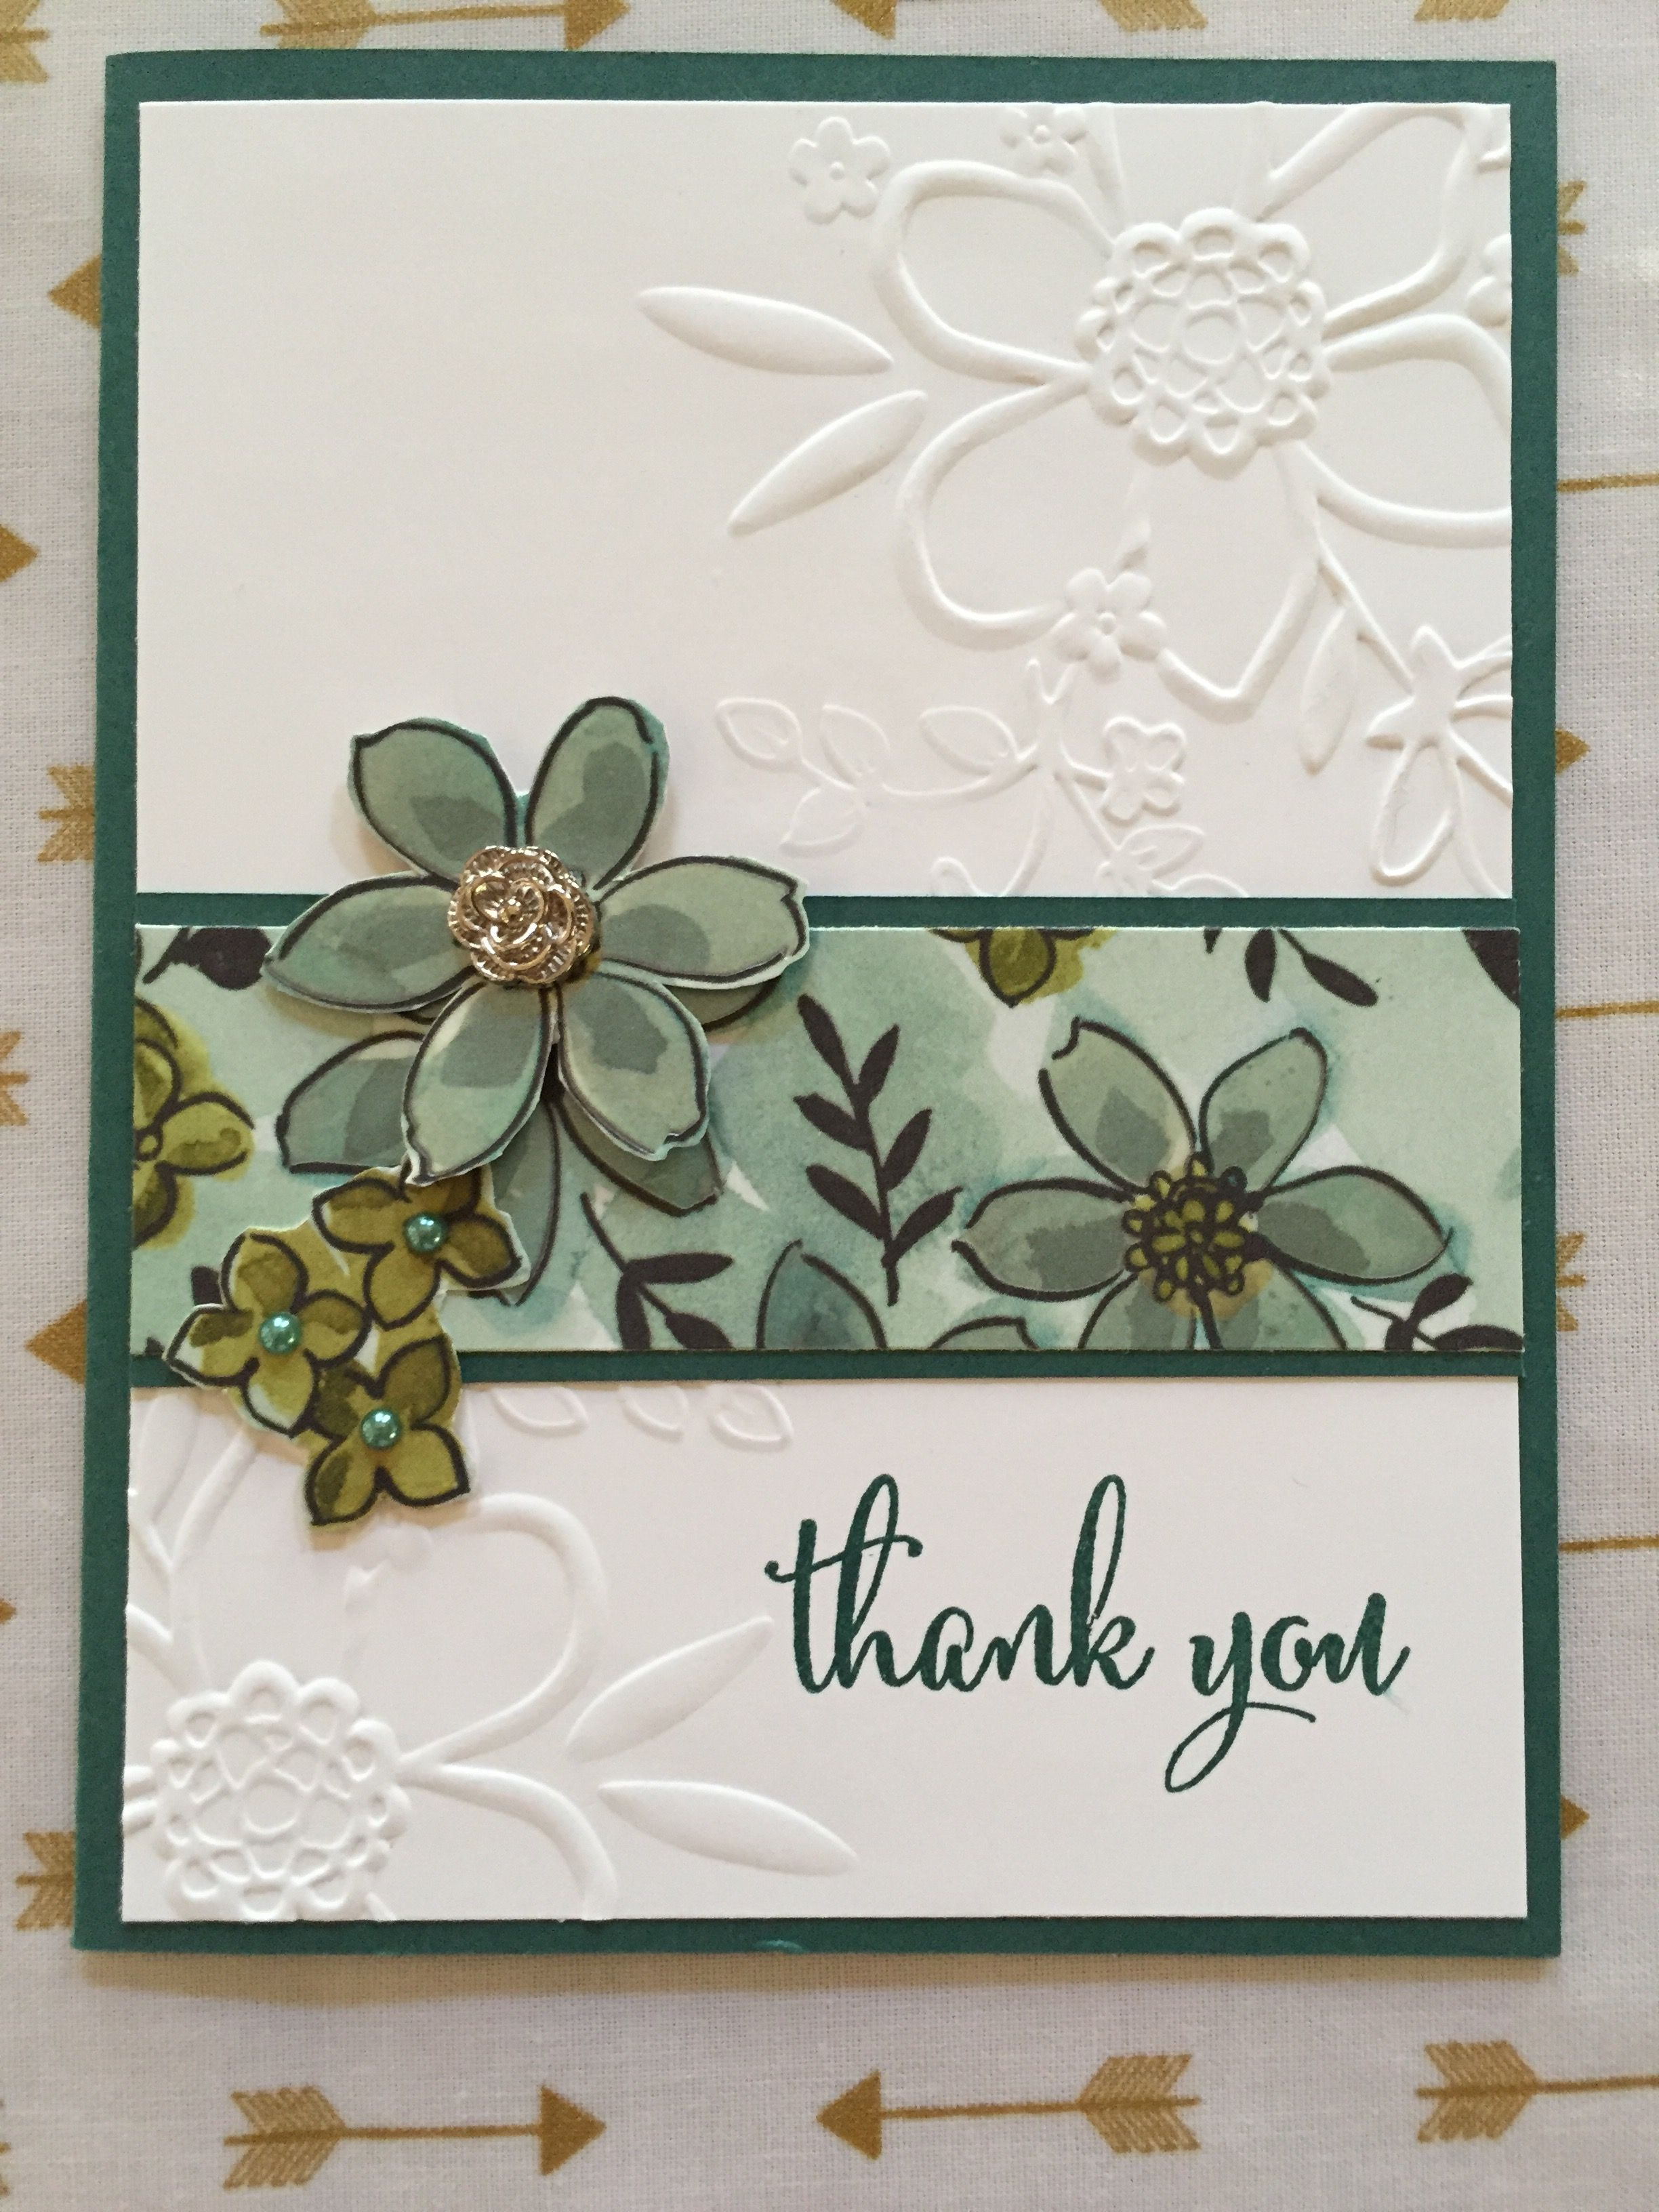 Embossed Flower Thank You Card With Images Embossed Cards